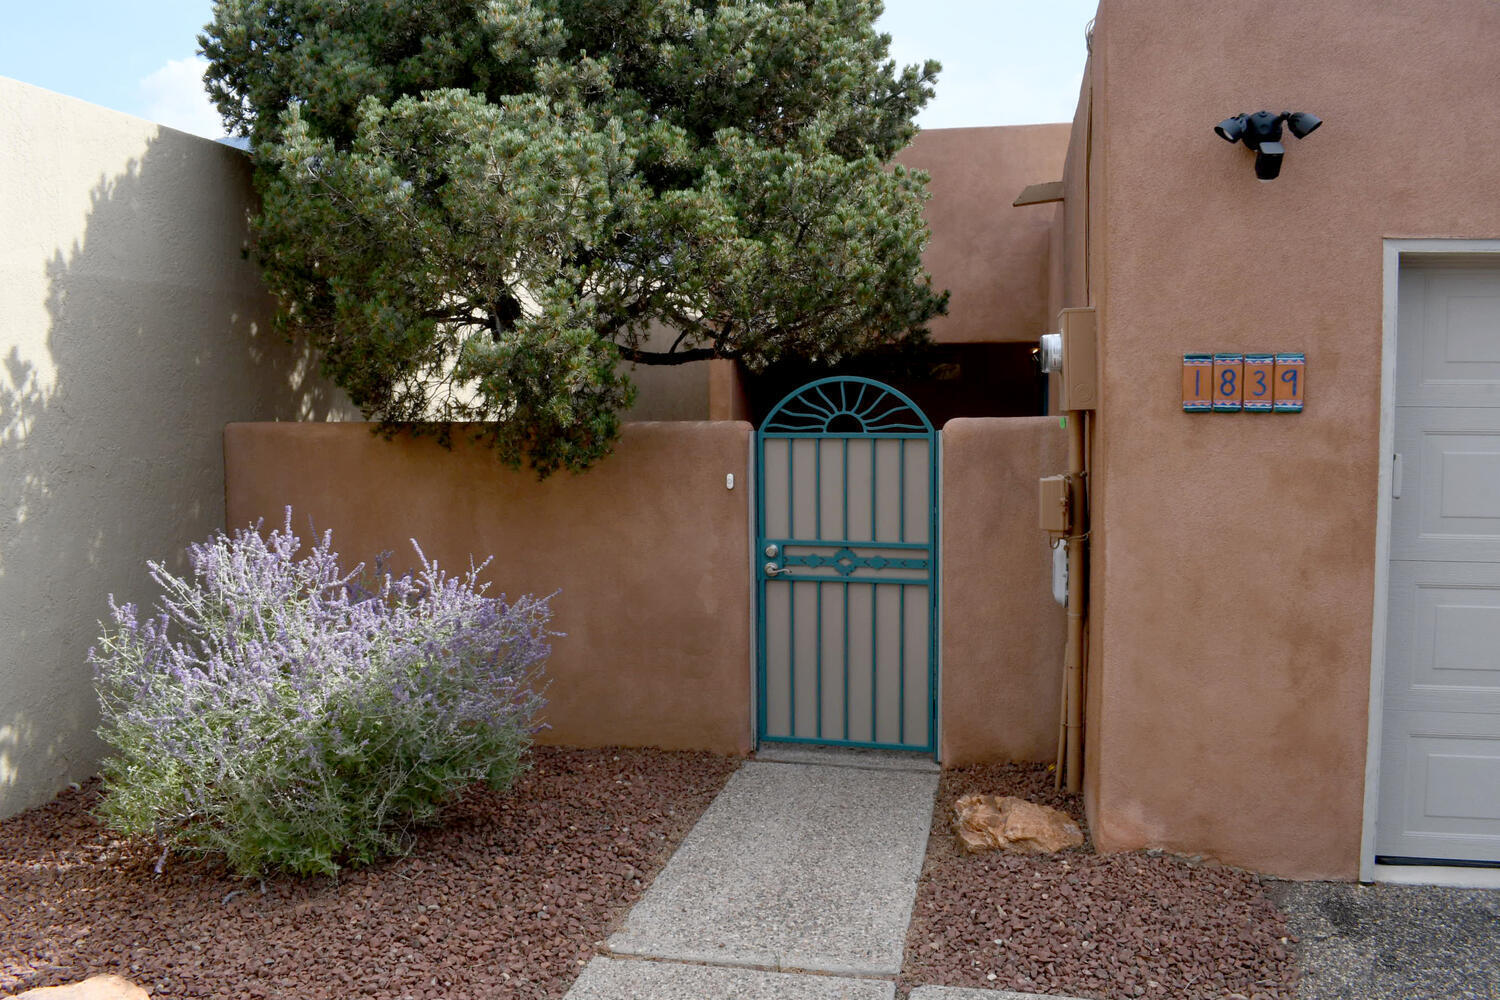 Nestled in the Northeast Heights is this charming home with breathtaking views of the Sandias. Your backyard decked patio will be a special place to soak in the view. All aspects of the home have been touched with care and many improvements throughout. Home has a 5 year Choice Home Warranty remaining for the lucky buyer.